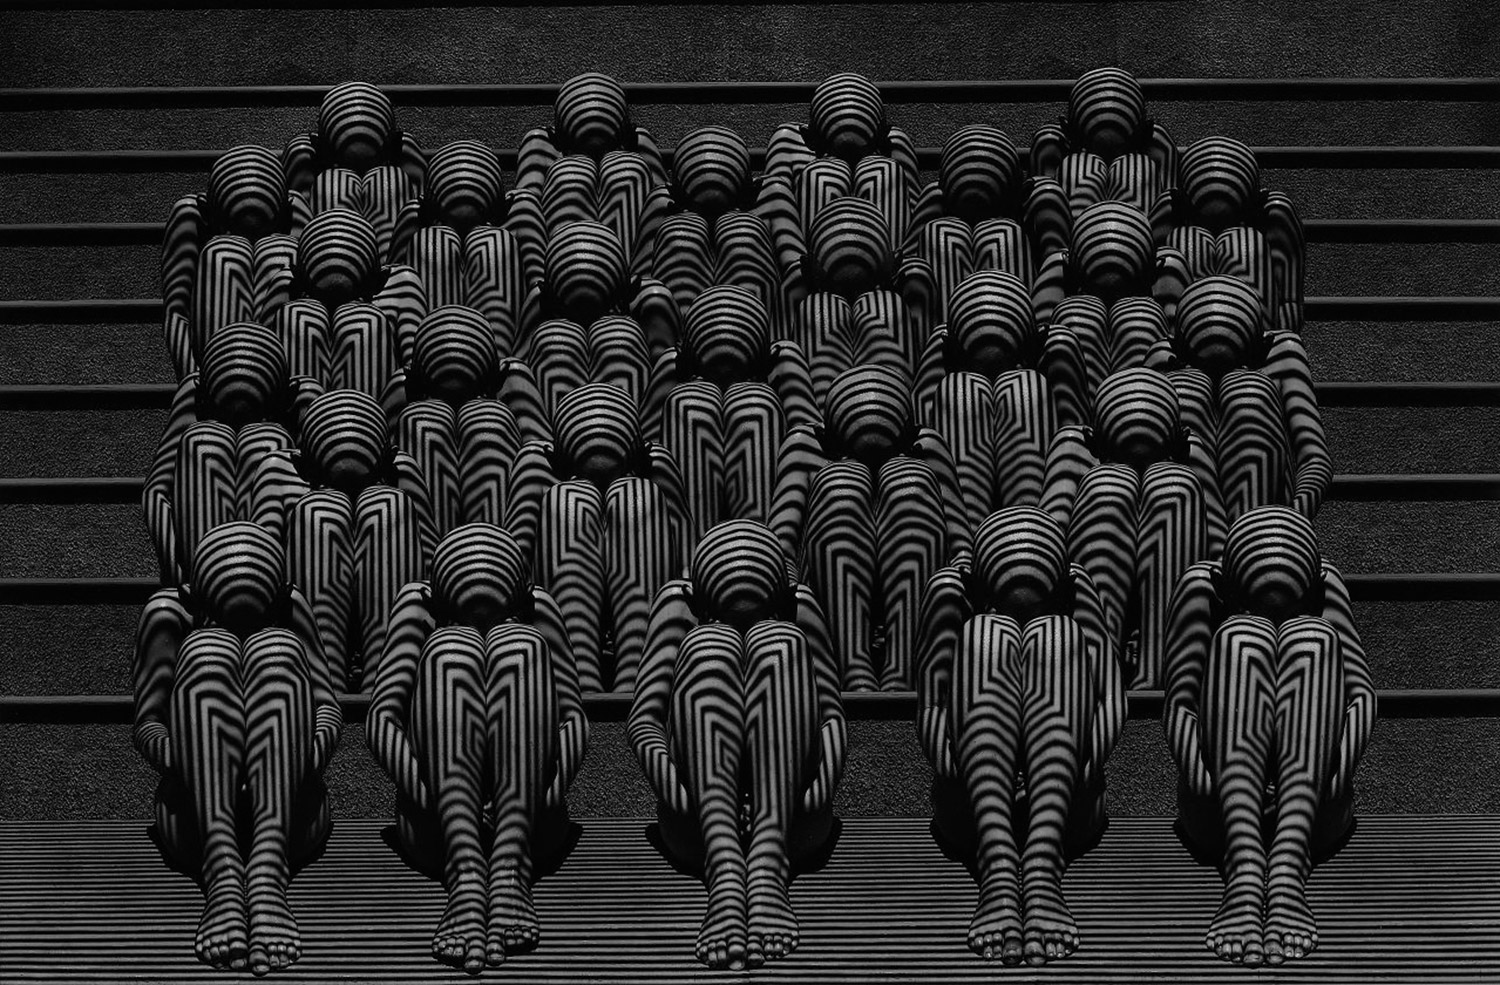 Misha Gordin - crowd on stairs with geometric patterns